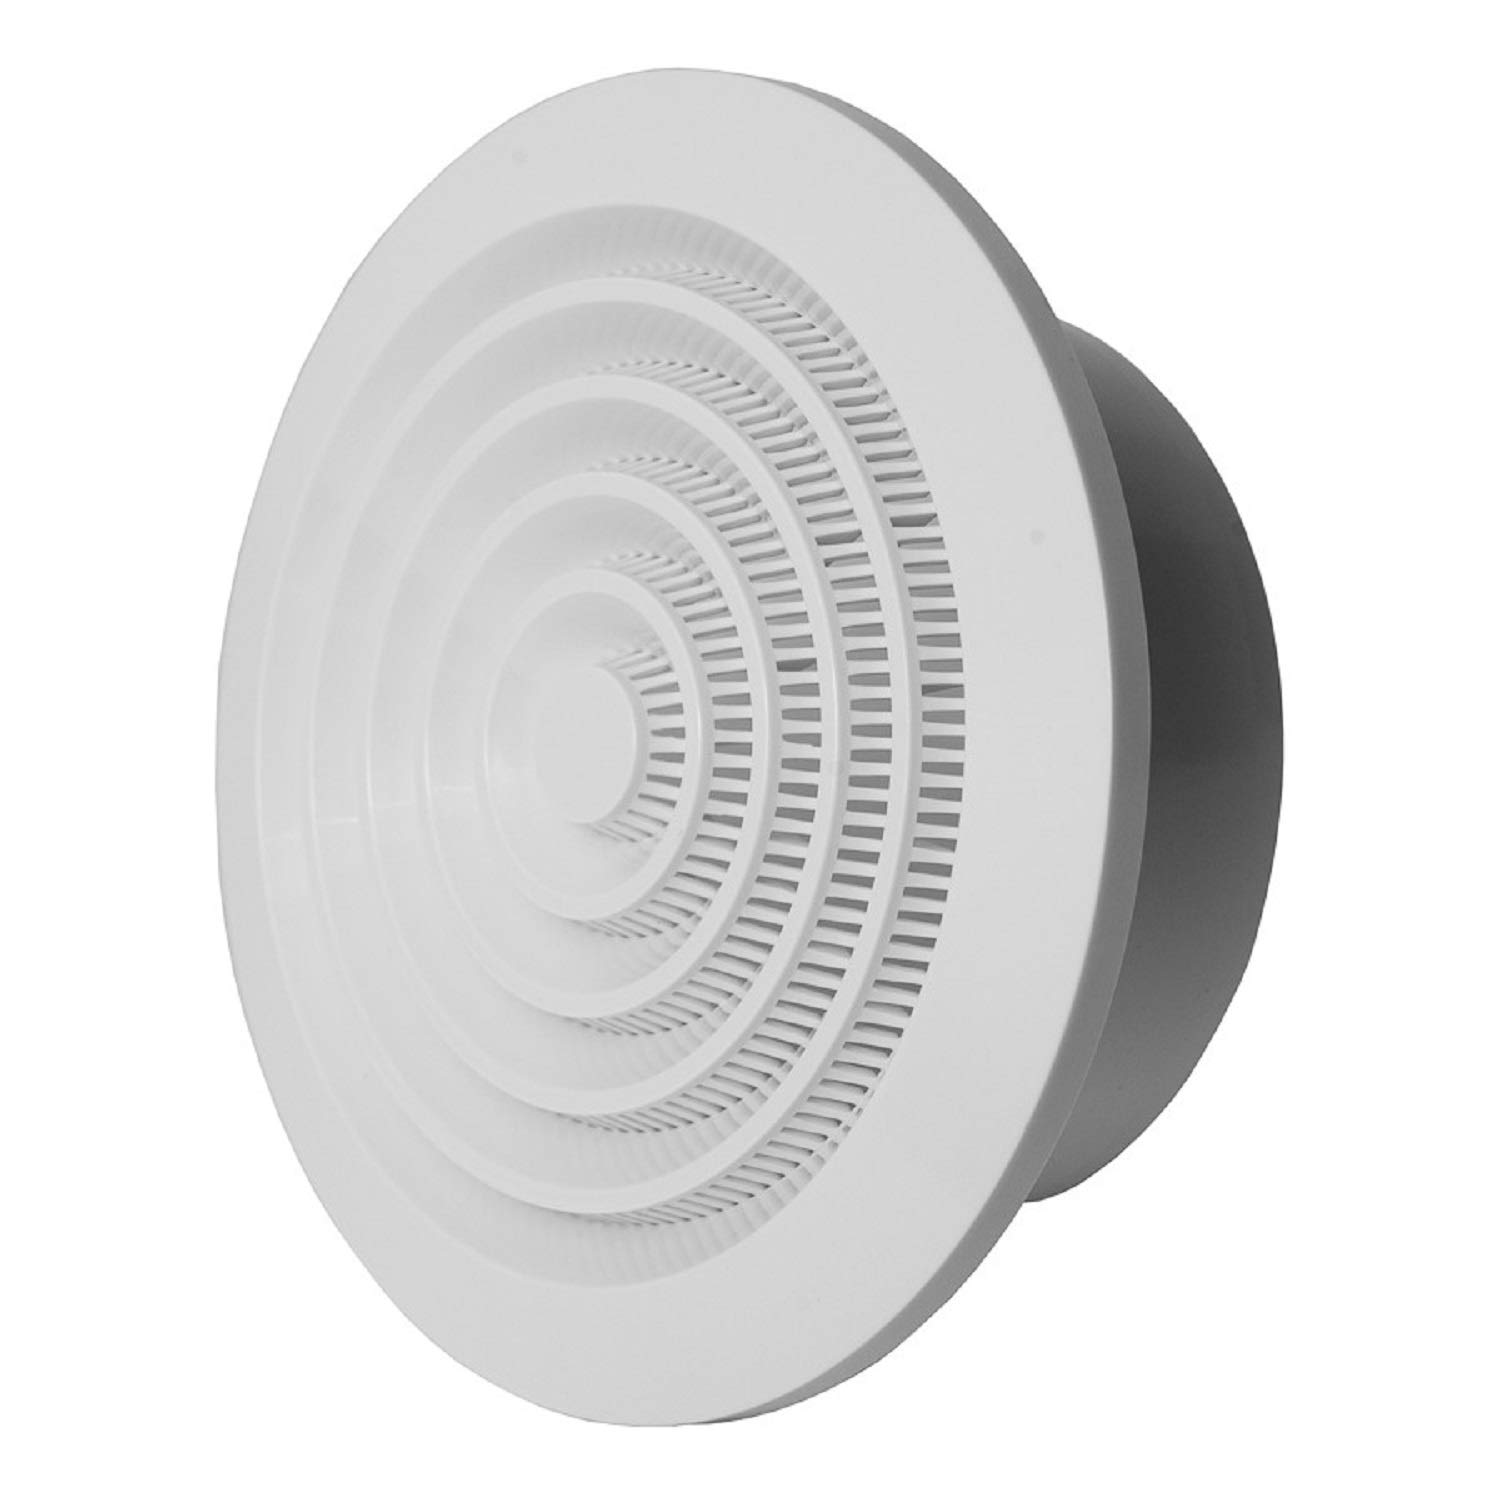 Ventilation Louvre Cover Grille Protection against Insects, Round, Diameter 125 mm – 5 inch, White ABS Grate NGA125 Diameter 125 mm - 5 inch Europlast